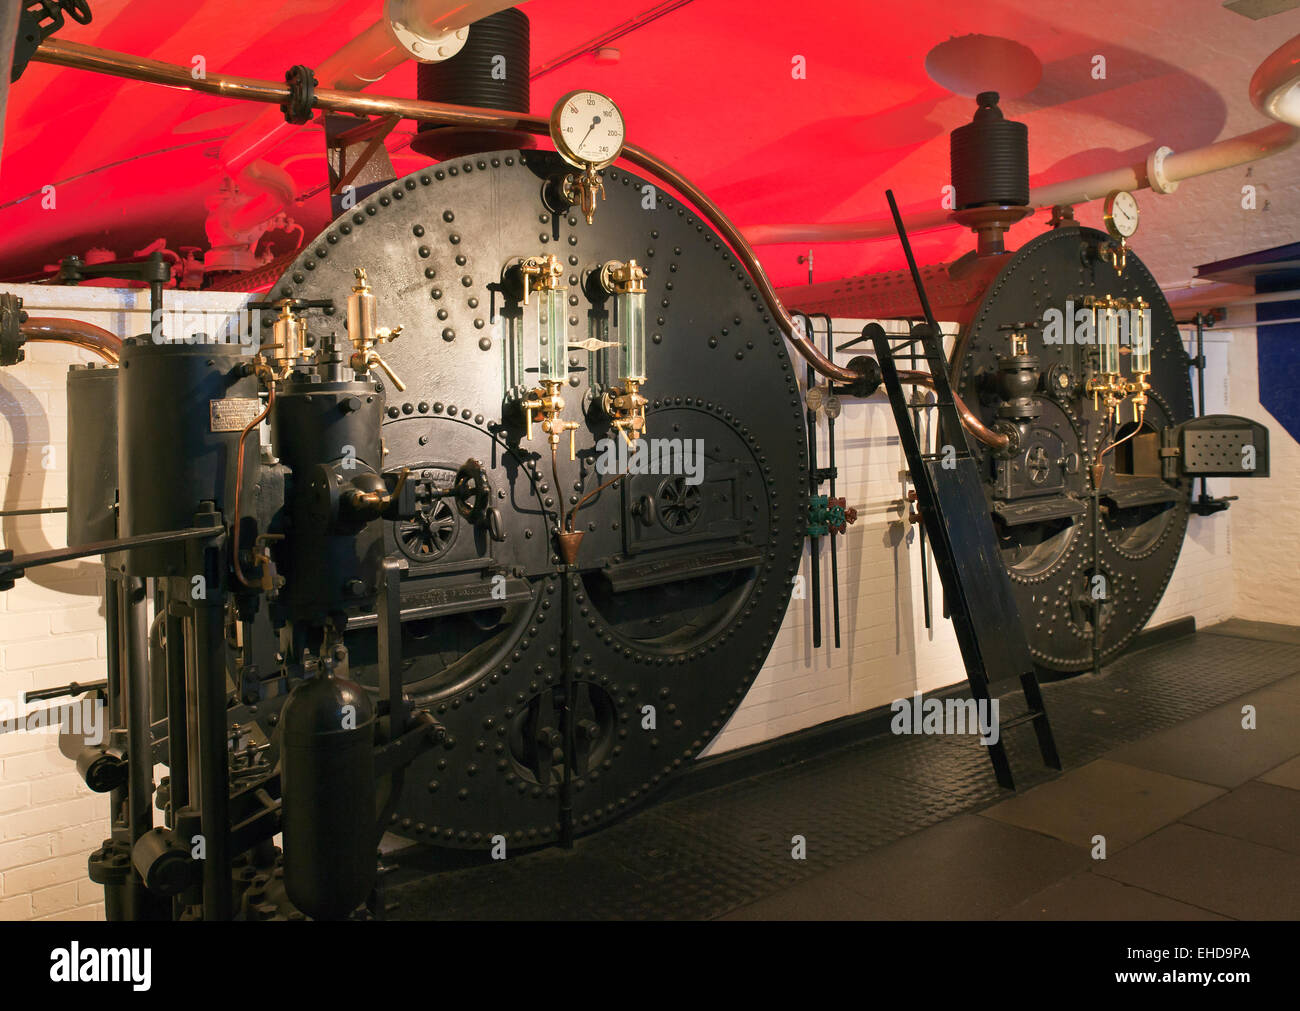 Steam Boilers Stock Photos & Steam Boilers Stock Images - Alamy